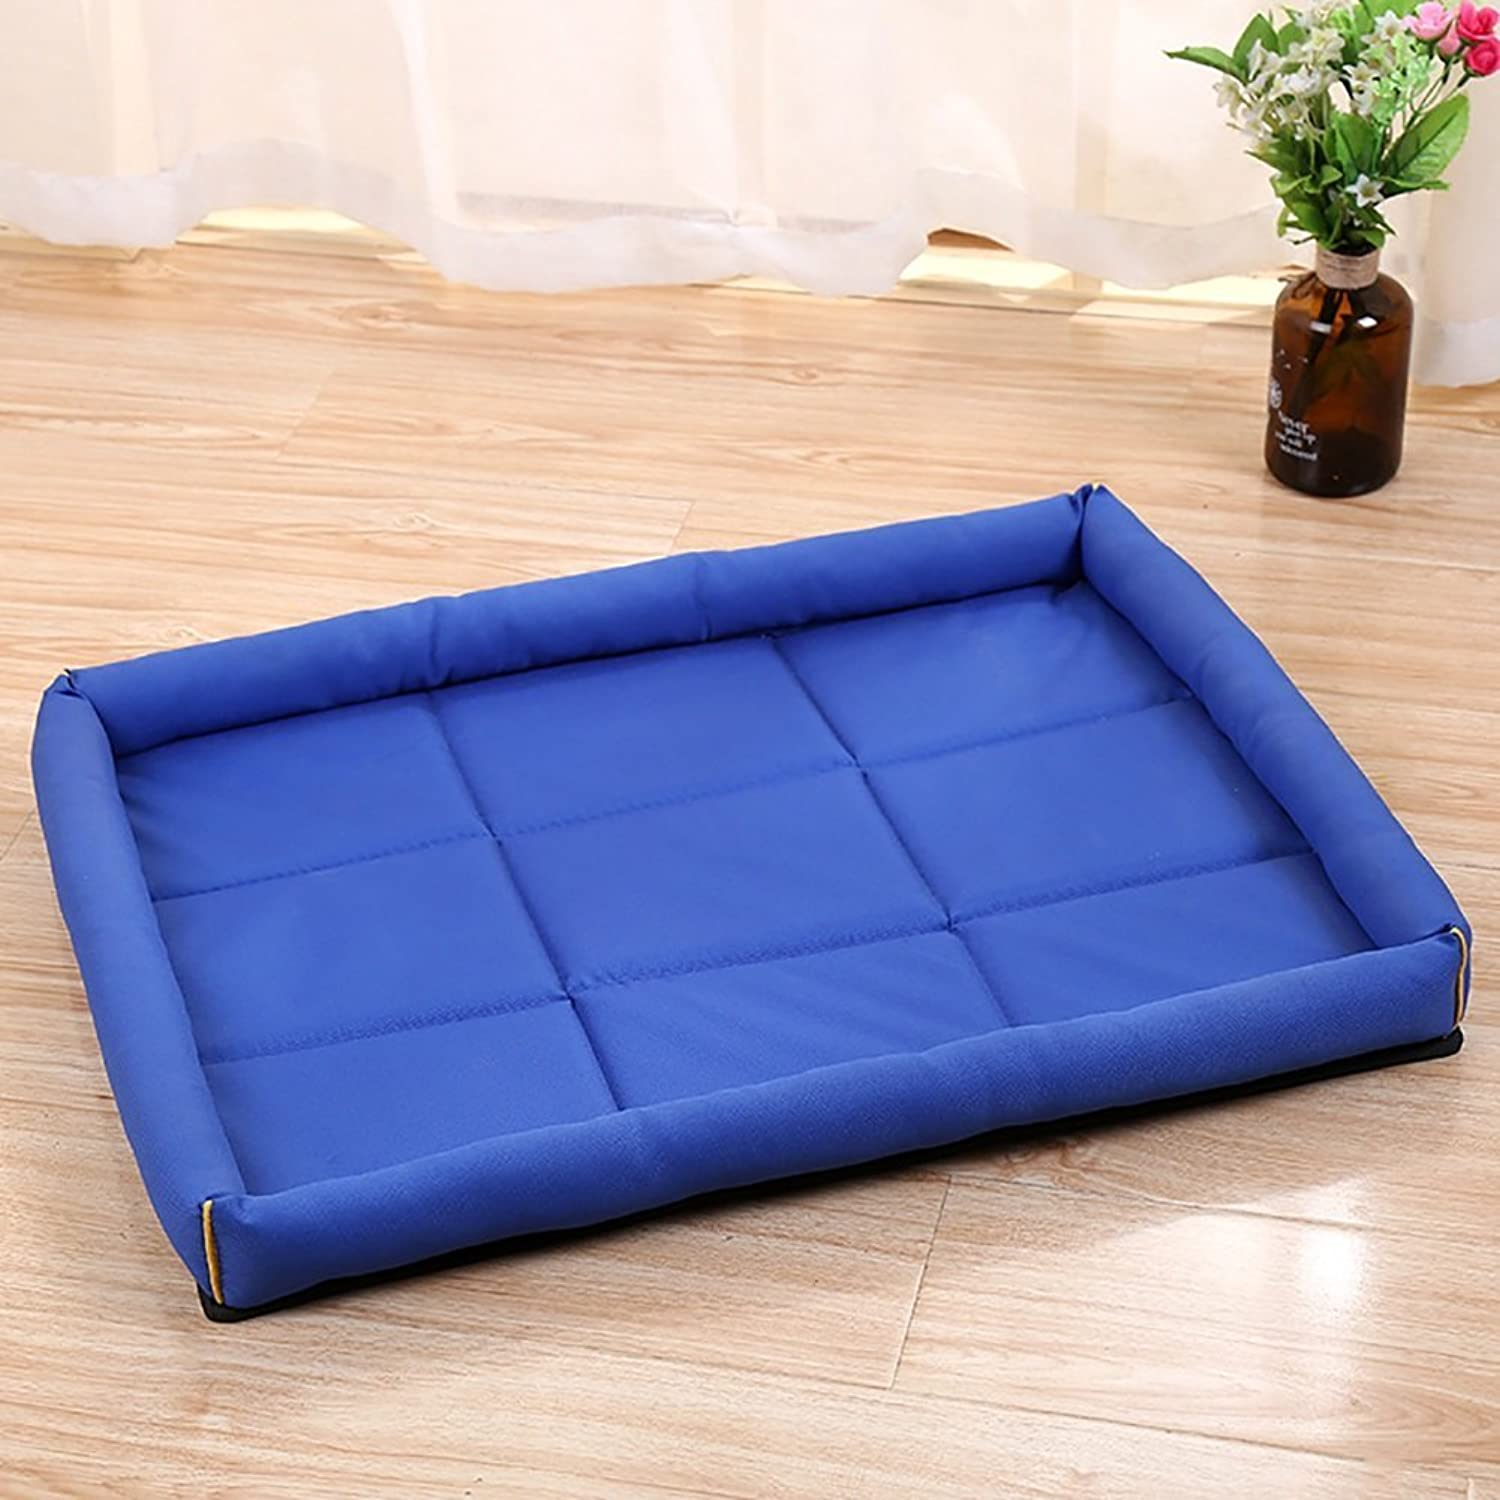 Pet Nest,waterproof Cushion Rectangular Openair Pet Nest Square Waterloo Large Dog Bed Cat Mat 4 color & 4 Size (color   Dark bluee, Size   64x49cm)